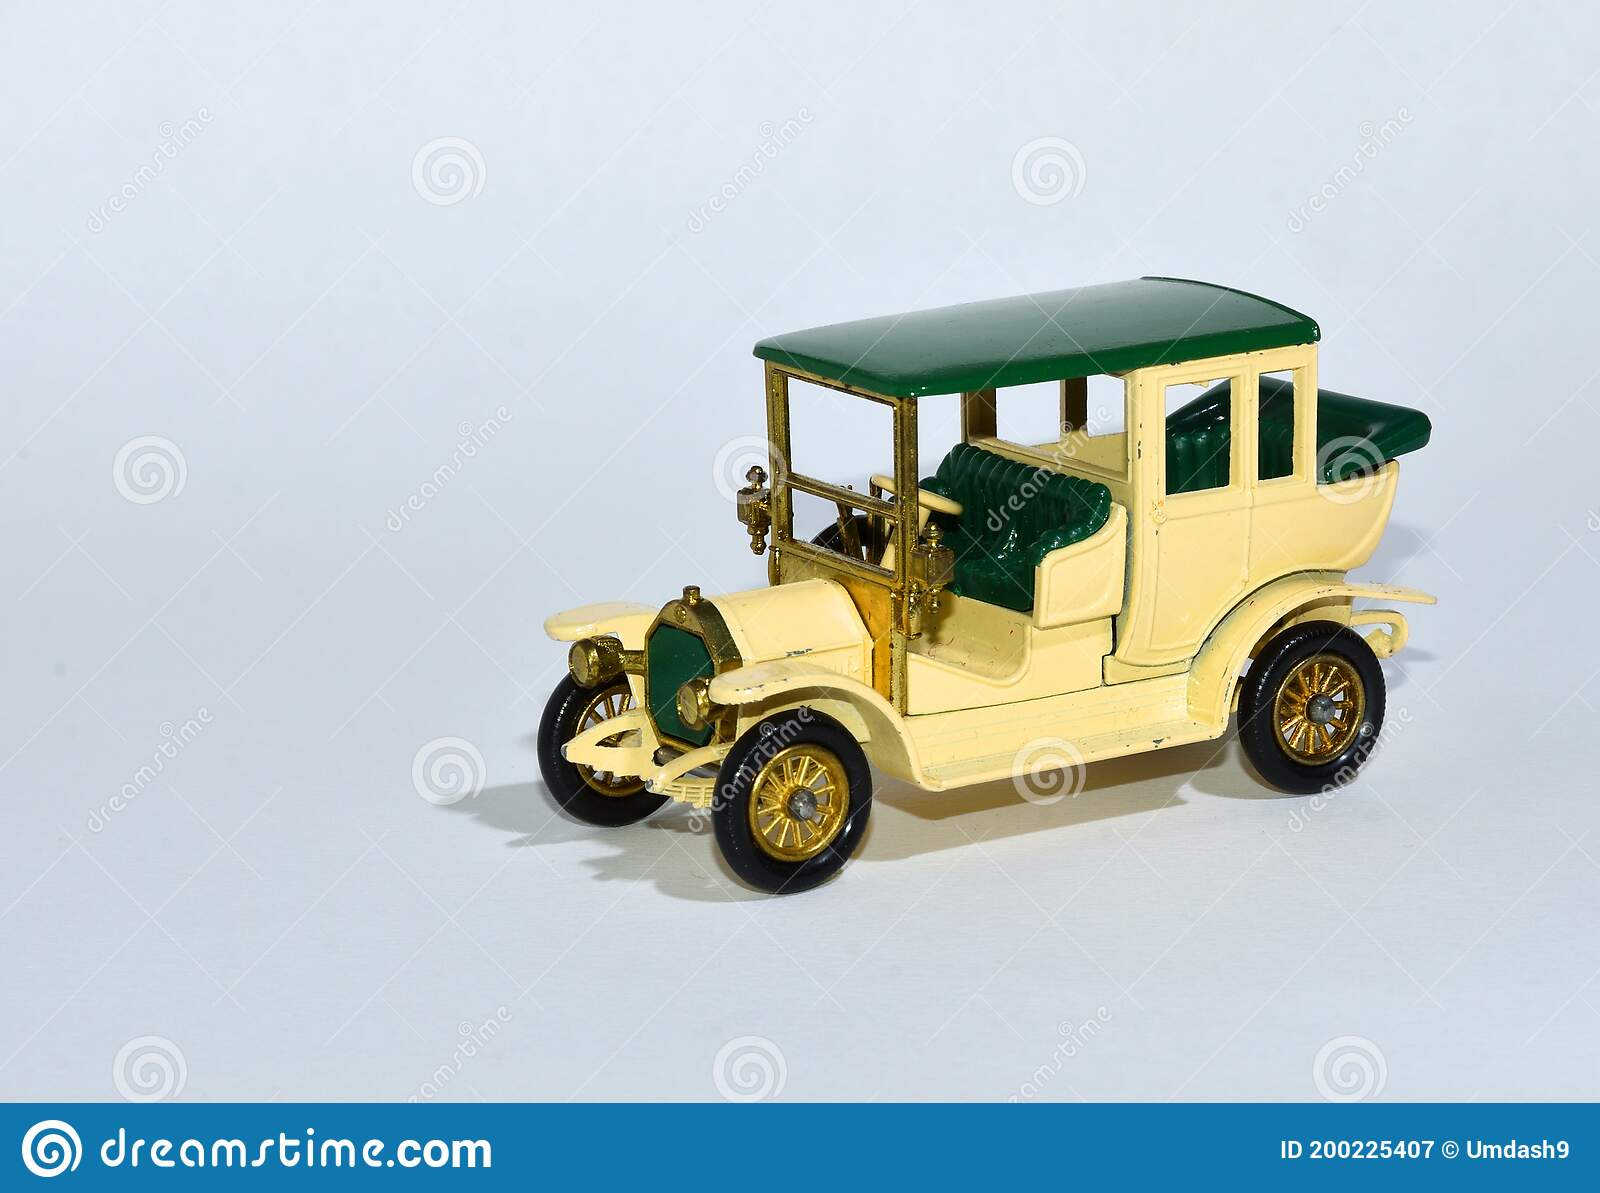 Toy Diecast Model Car 1910 Benz Limousine Y3 A Matchbox Yesteryear Product By Lesney With White Background Editorial Photography Image Of Diecast Colourful 200225407